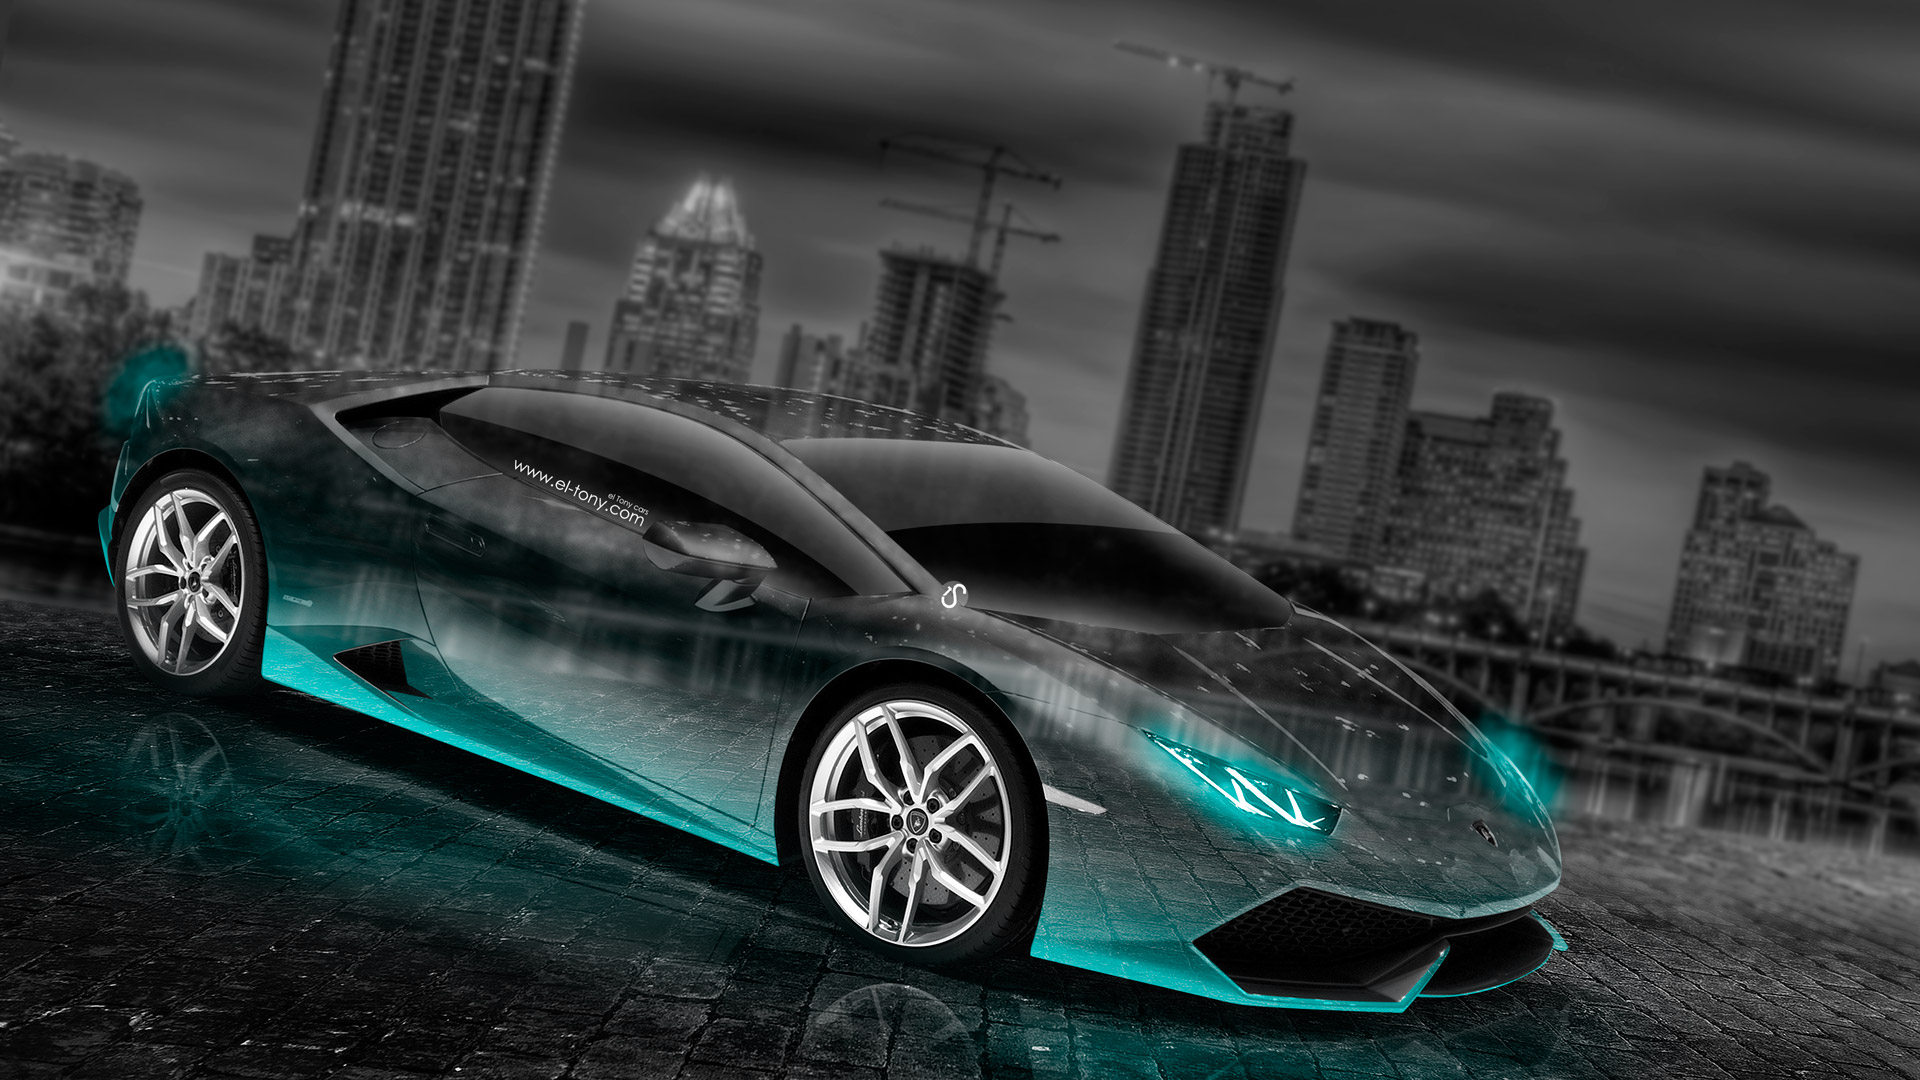 Wonderful Lamborghini Huracan Crystal City Car 2014 Azure Neon